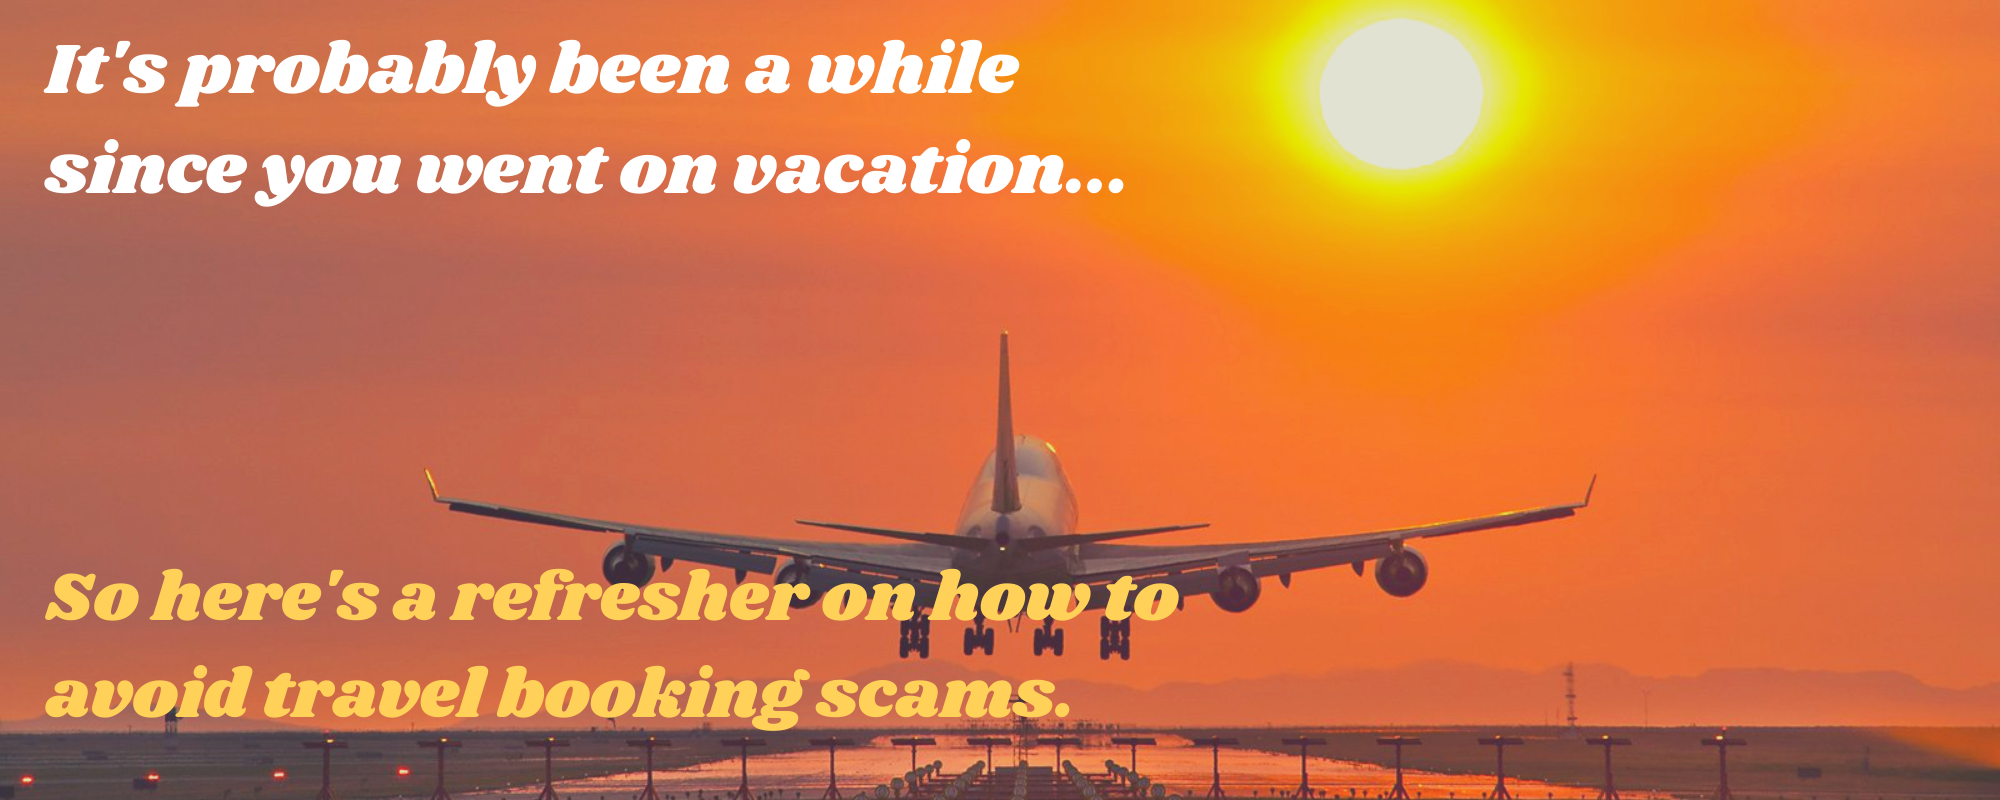 """A picture of an airplane with the text, """"It's probably been a while since you went on vacation, so here's a refresher on how to avoid travel booking scams."""""""